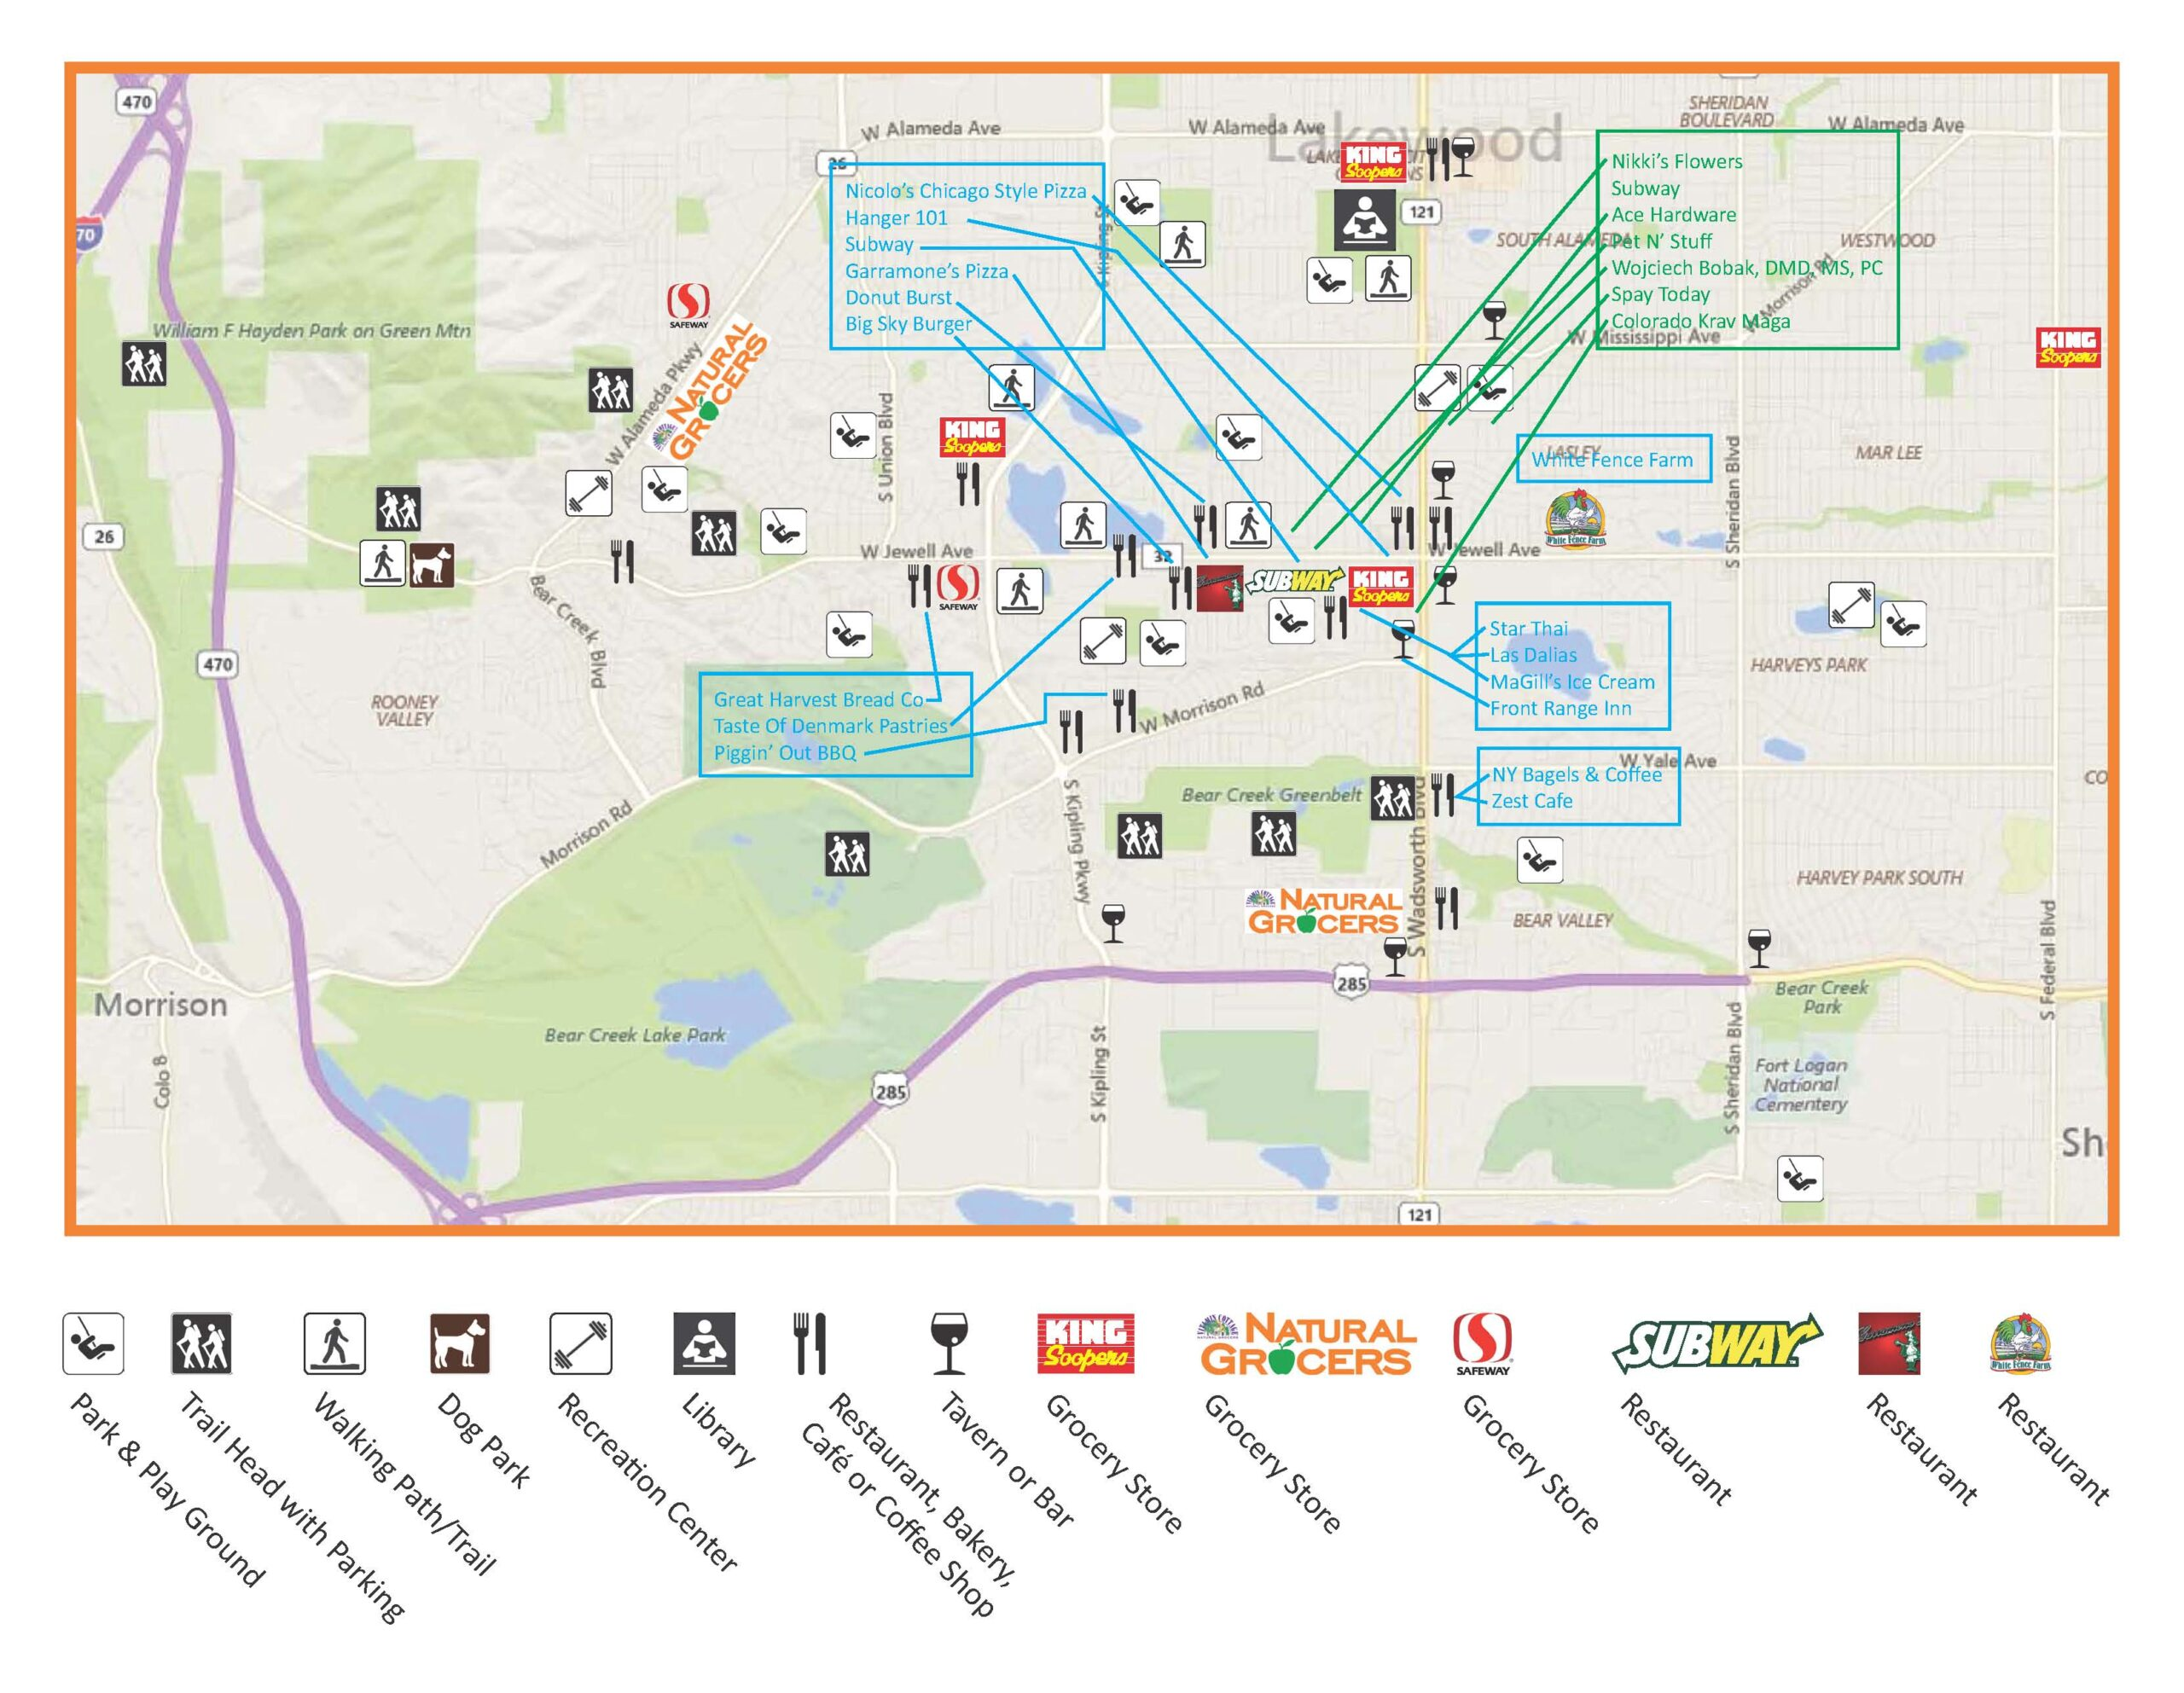 Southern Gables Business Supporters Map